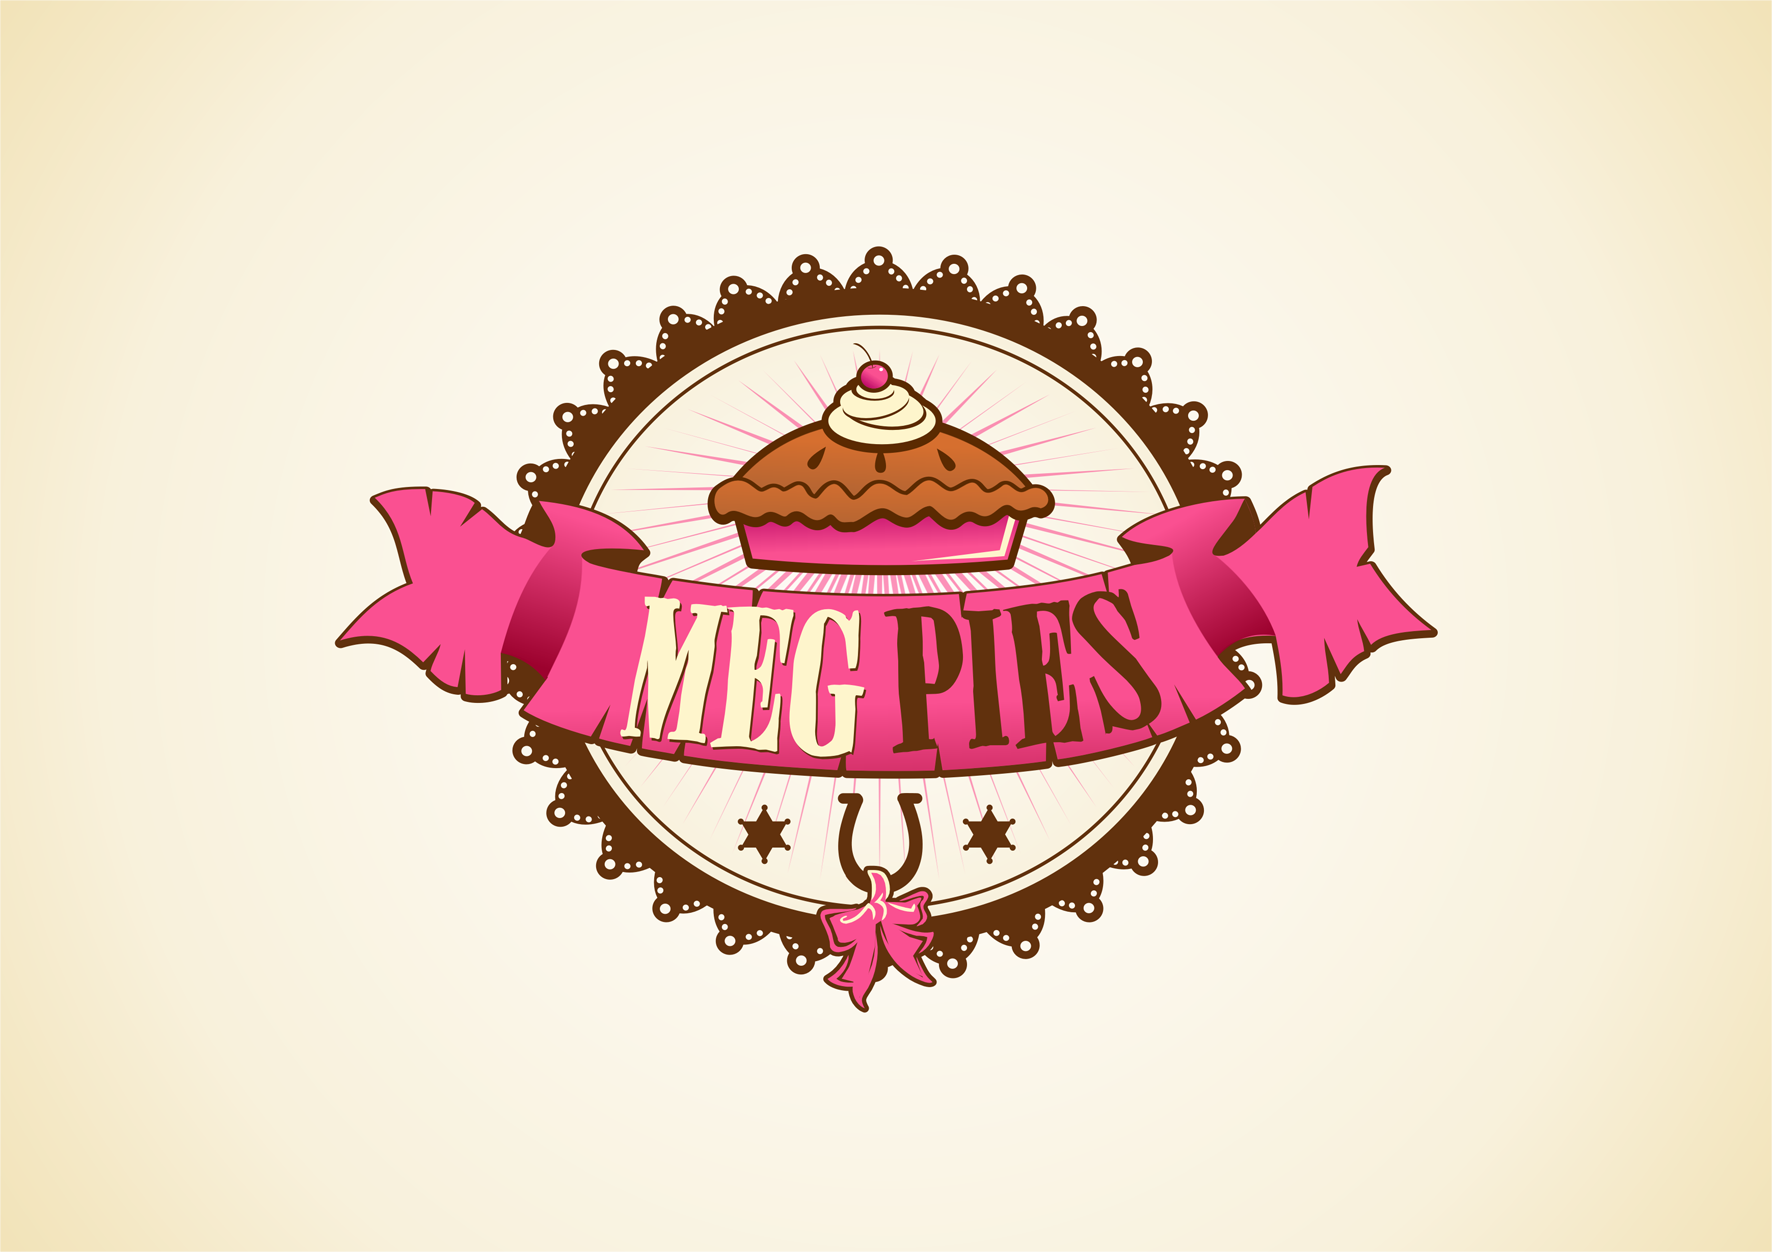 New logo wanted for Meg Pies